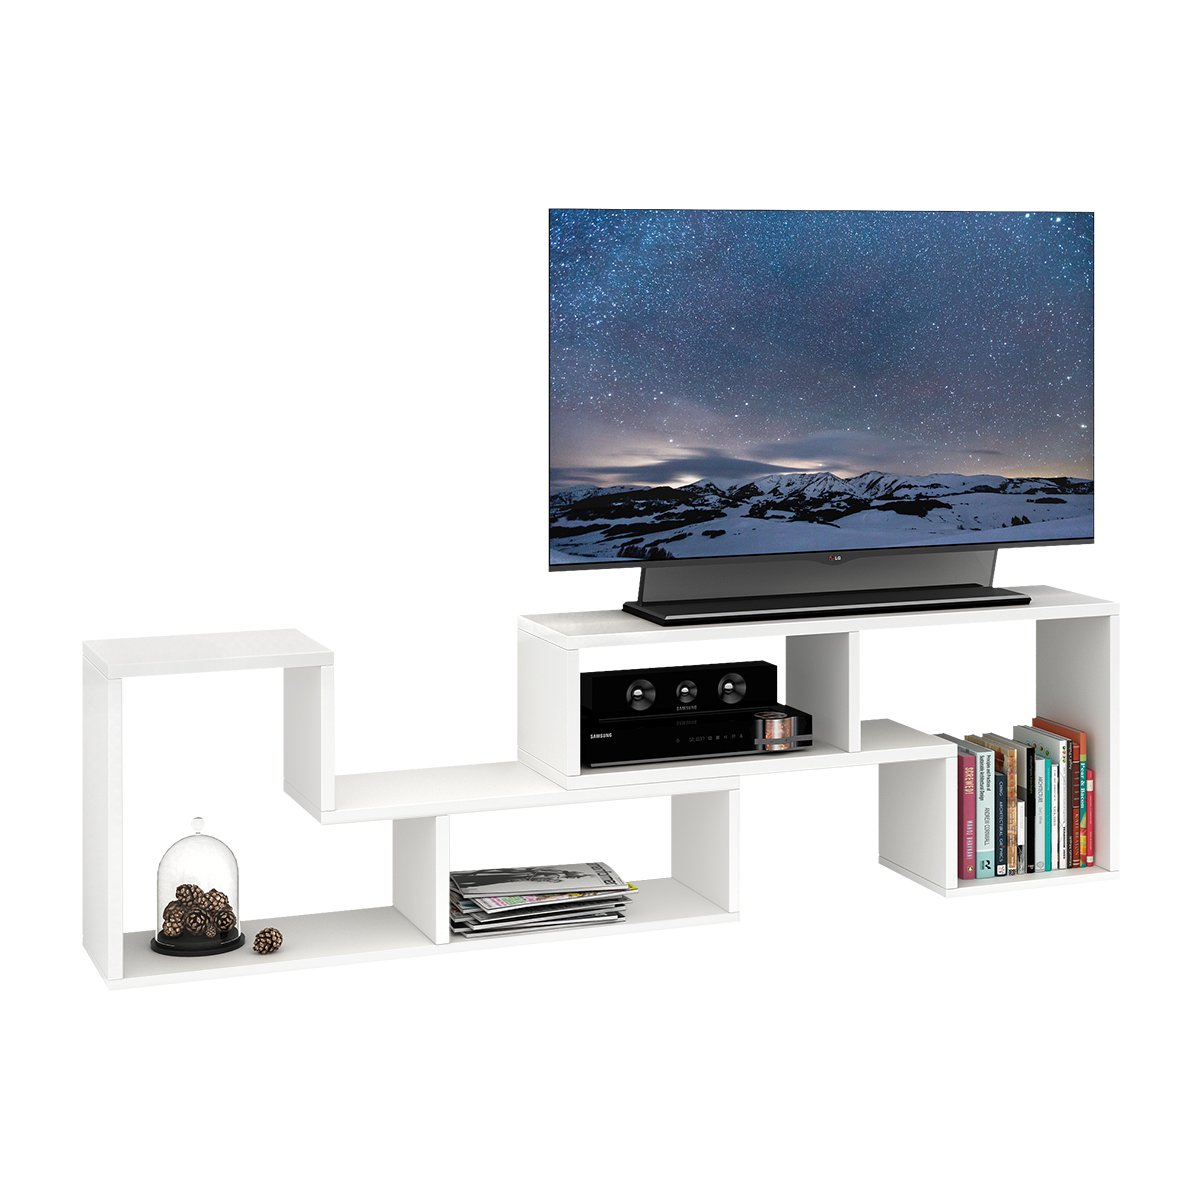 DEVAISE 3-in-1 Versatile TV Stand Bookcase Display Cabinet by White (0.9'' Thickness)